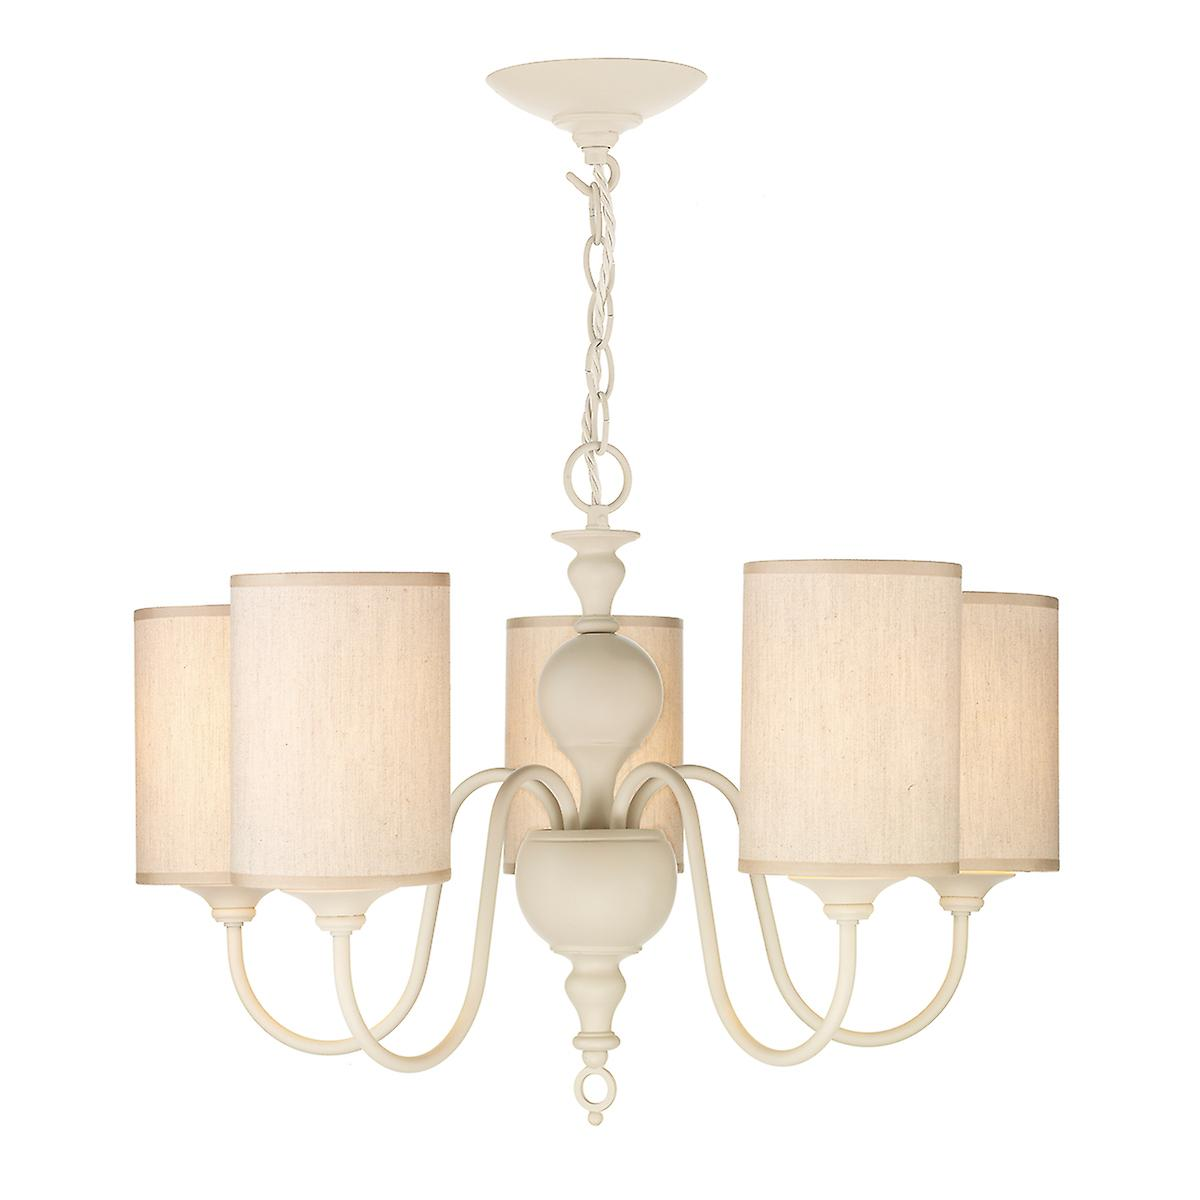 David Hunt FLE0533 Flemish 5 Light Pendant In A Cream Finish With Shade